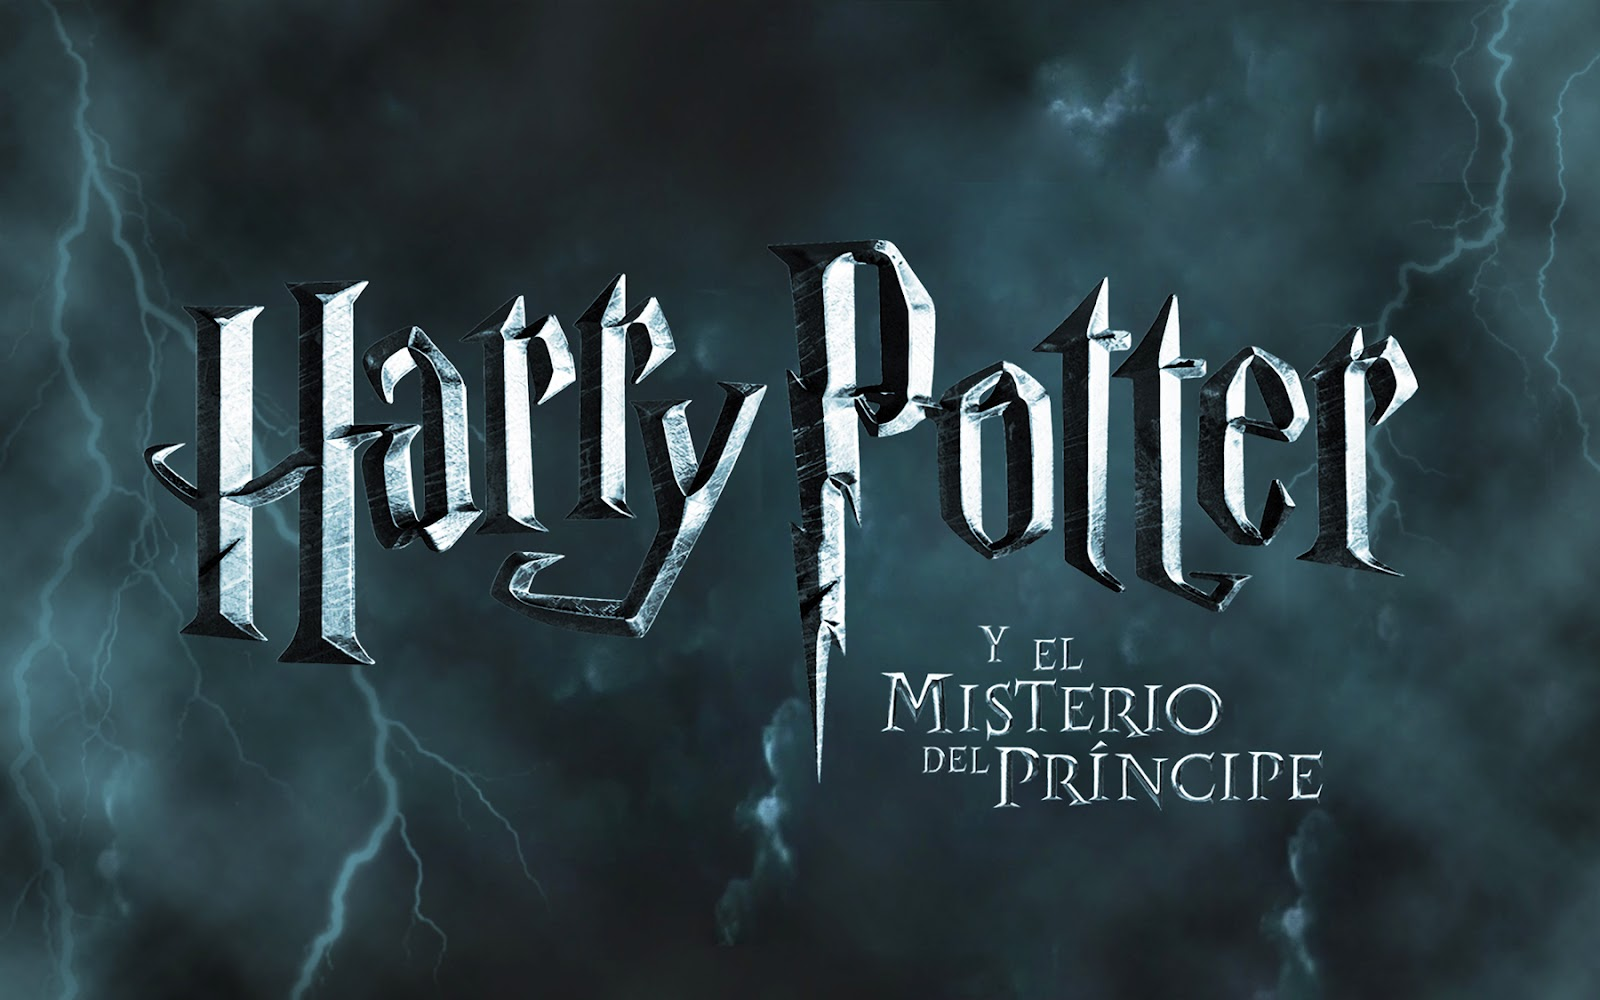 Harry Potter Y El Misterio Del Principe Libro Harry Potter Y El Misterio Del Principe ~ Jc89 Movie´s